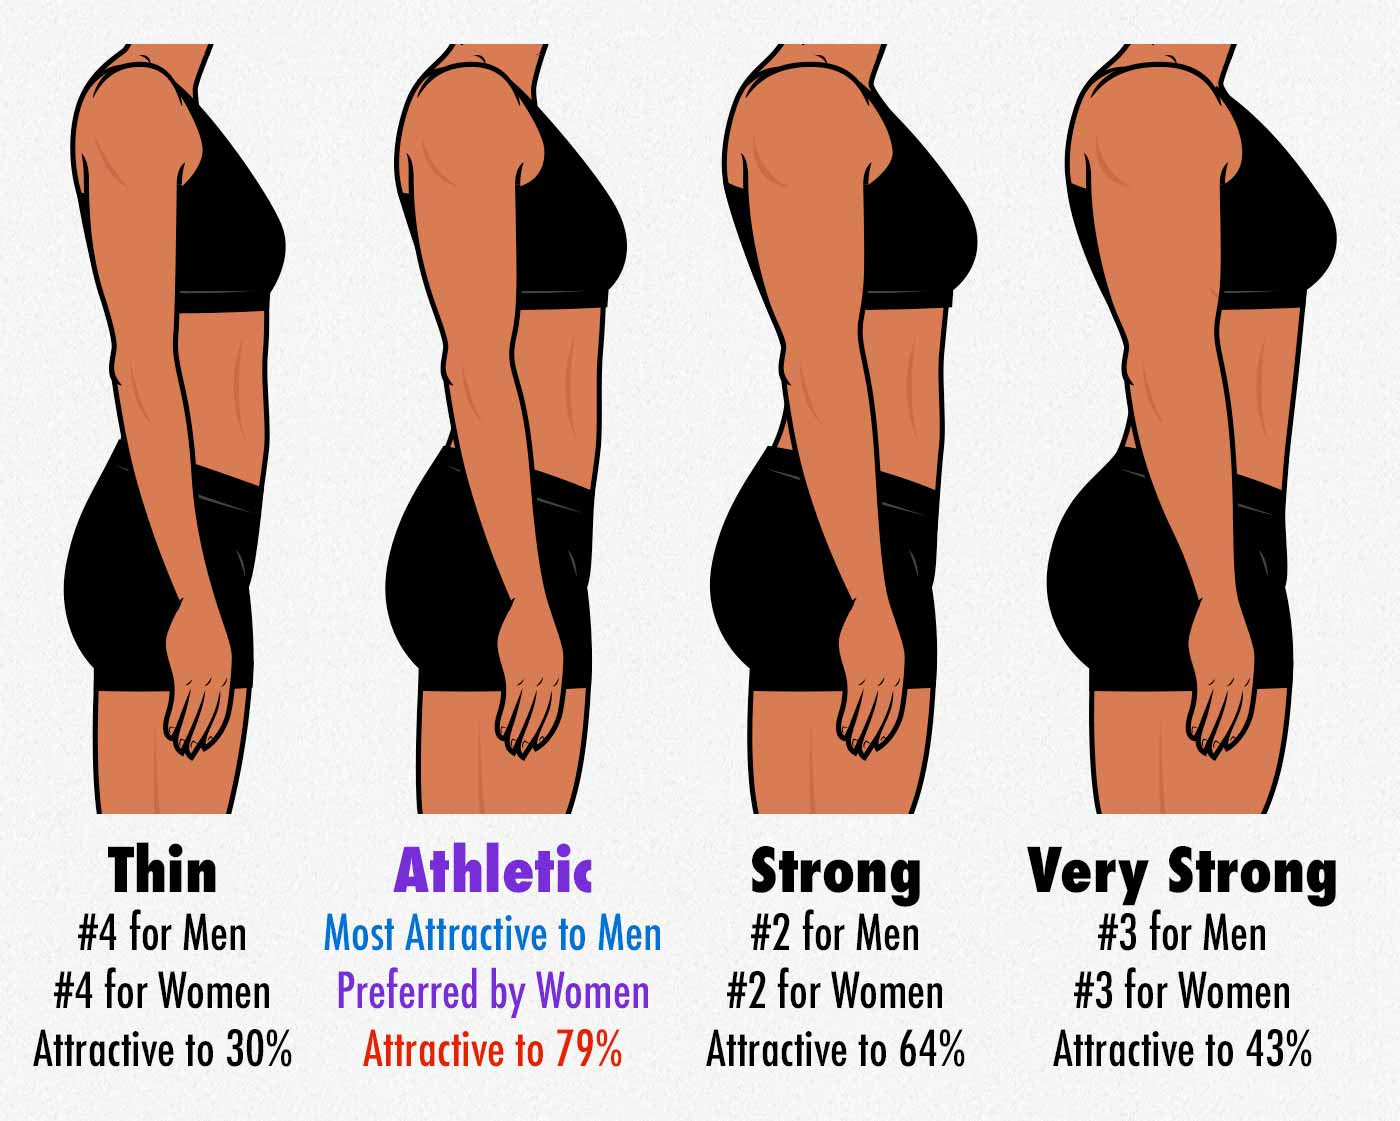 Survey results showing the amount of muscle that men found most attractive in women.